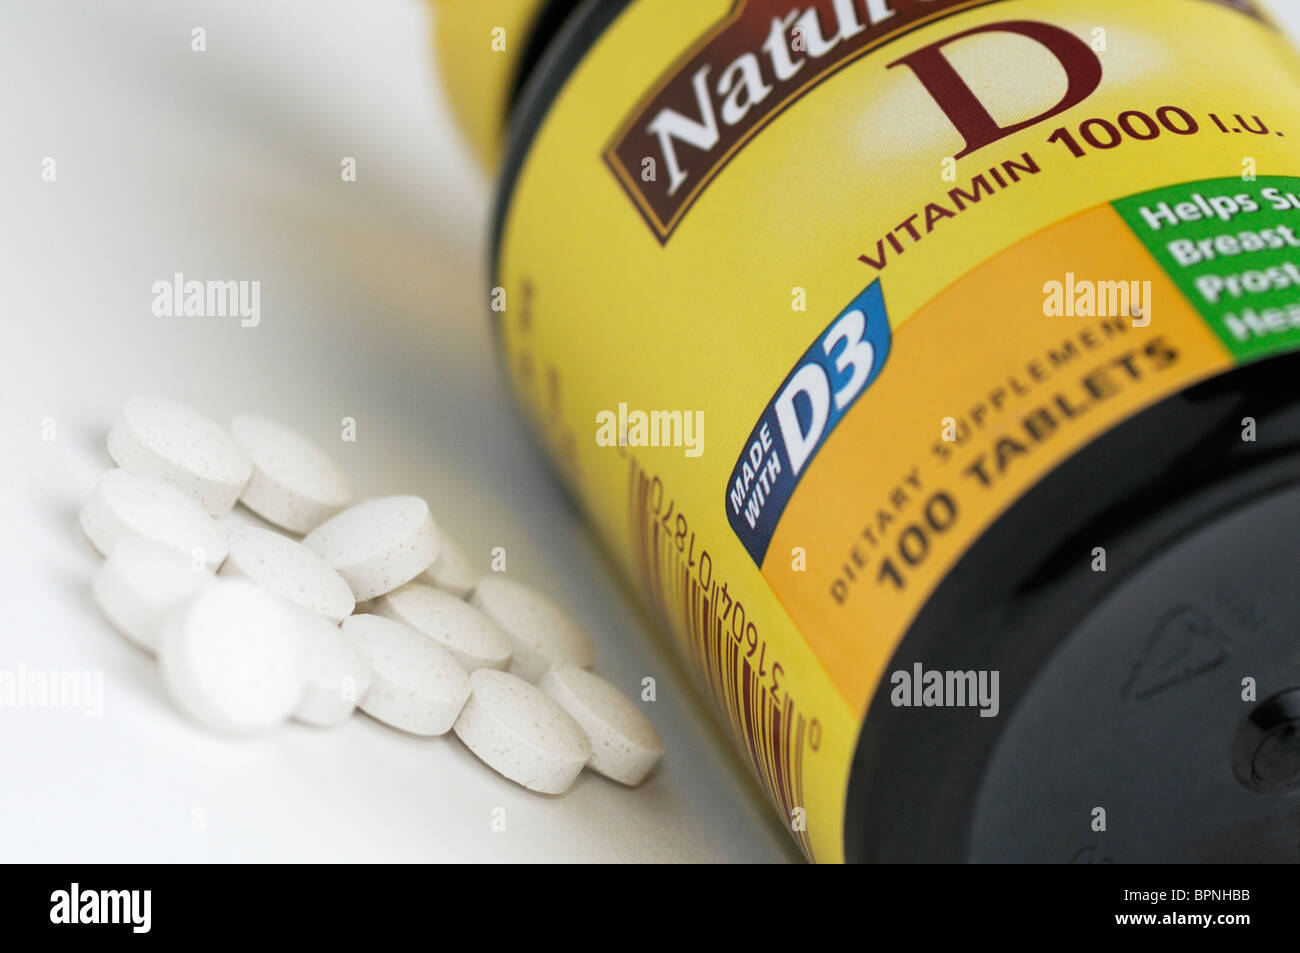 Bottle of vitamin D (D3) supplements - Stock Image